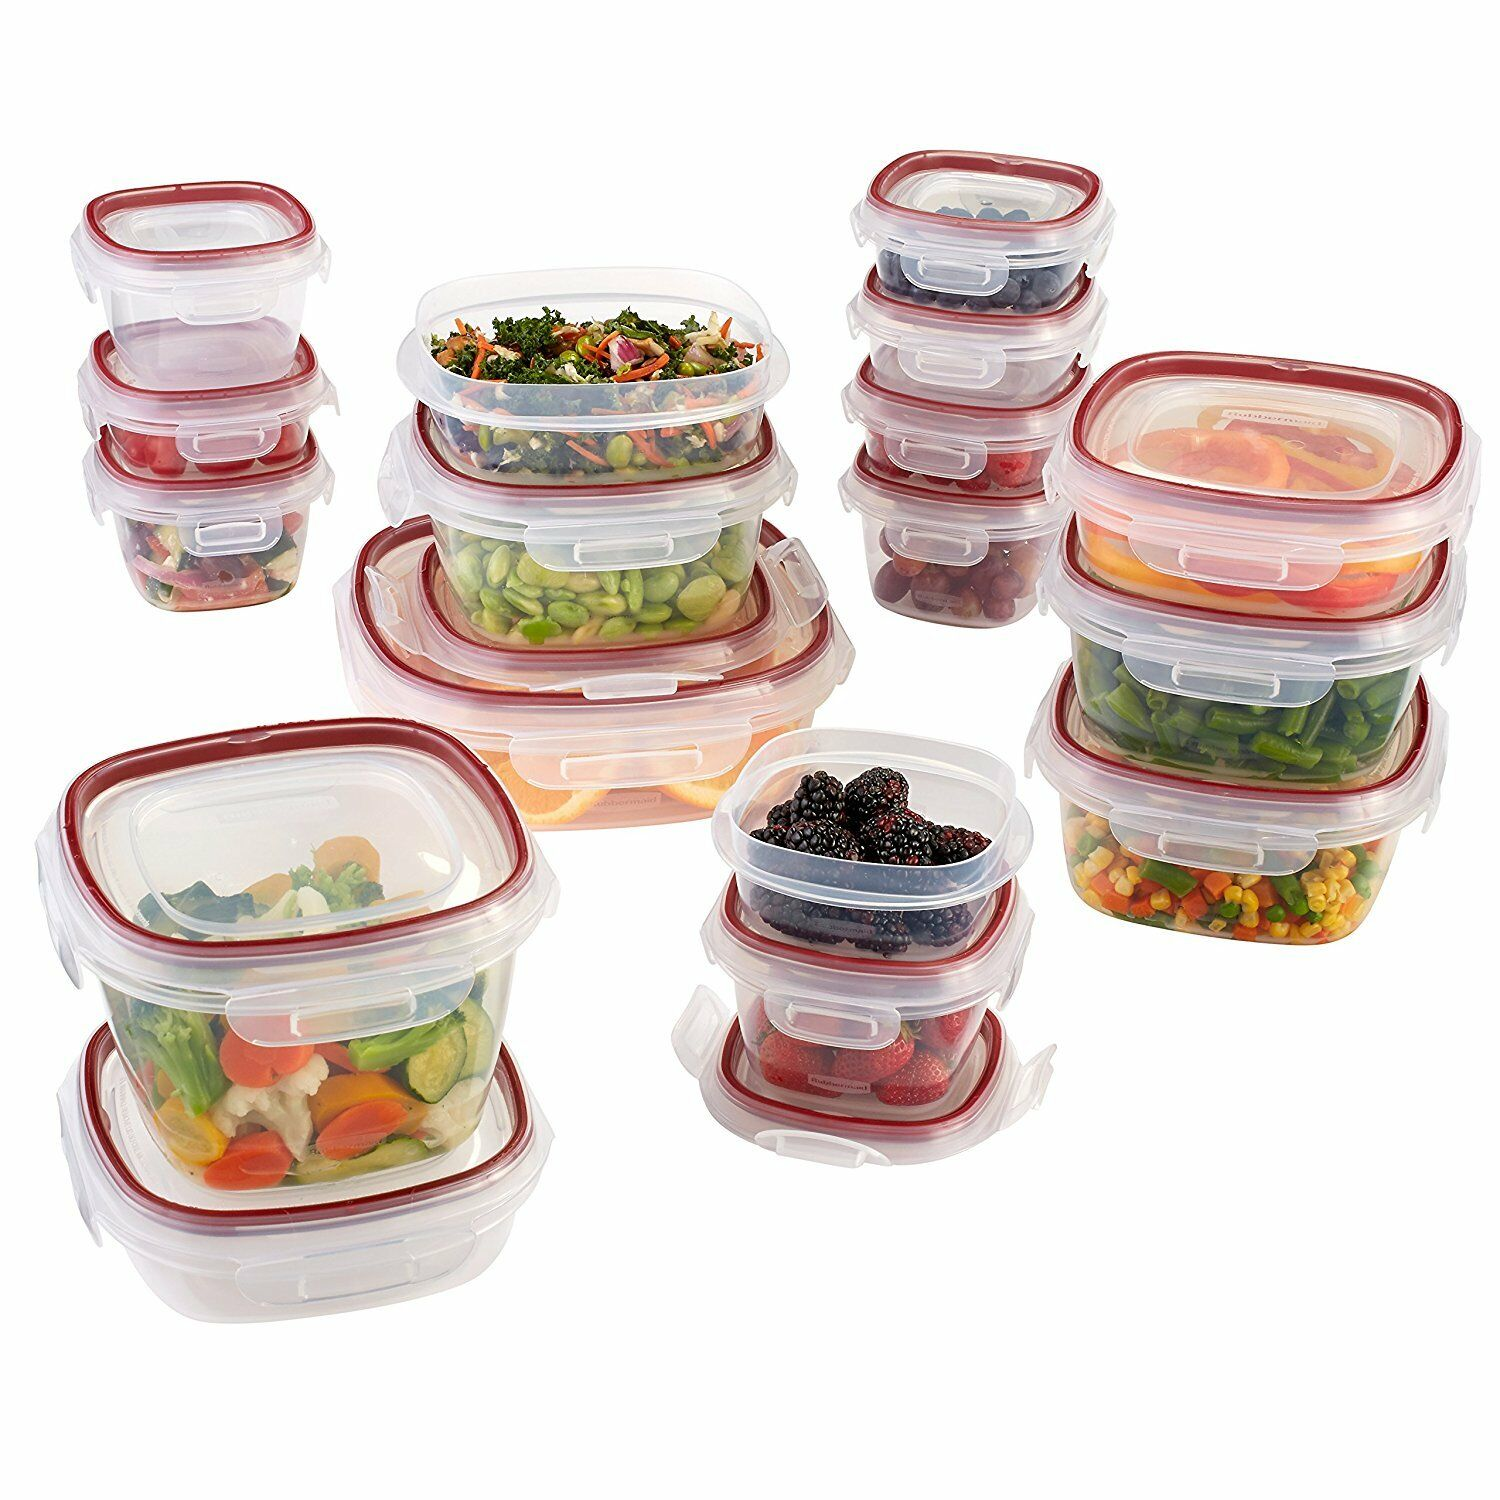 Rubbermaid Easy Find Lock-Its Food Storage Containers, 5 Sets